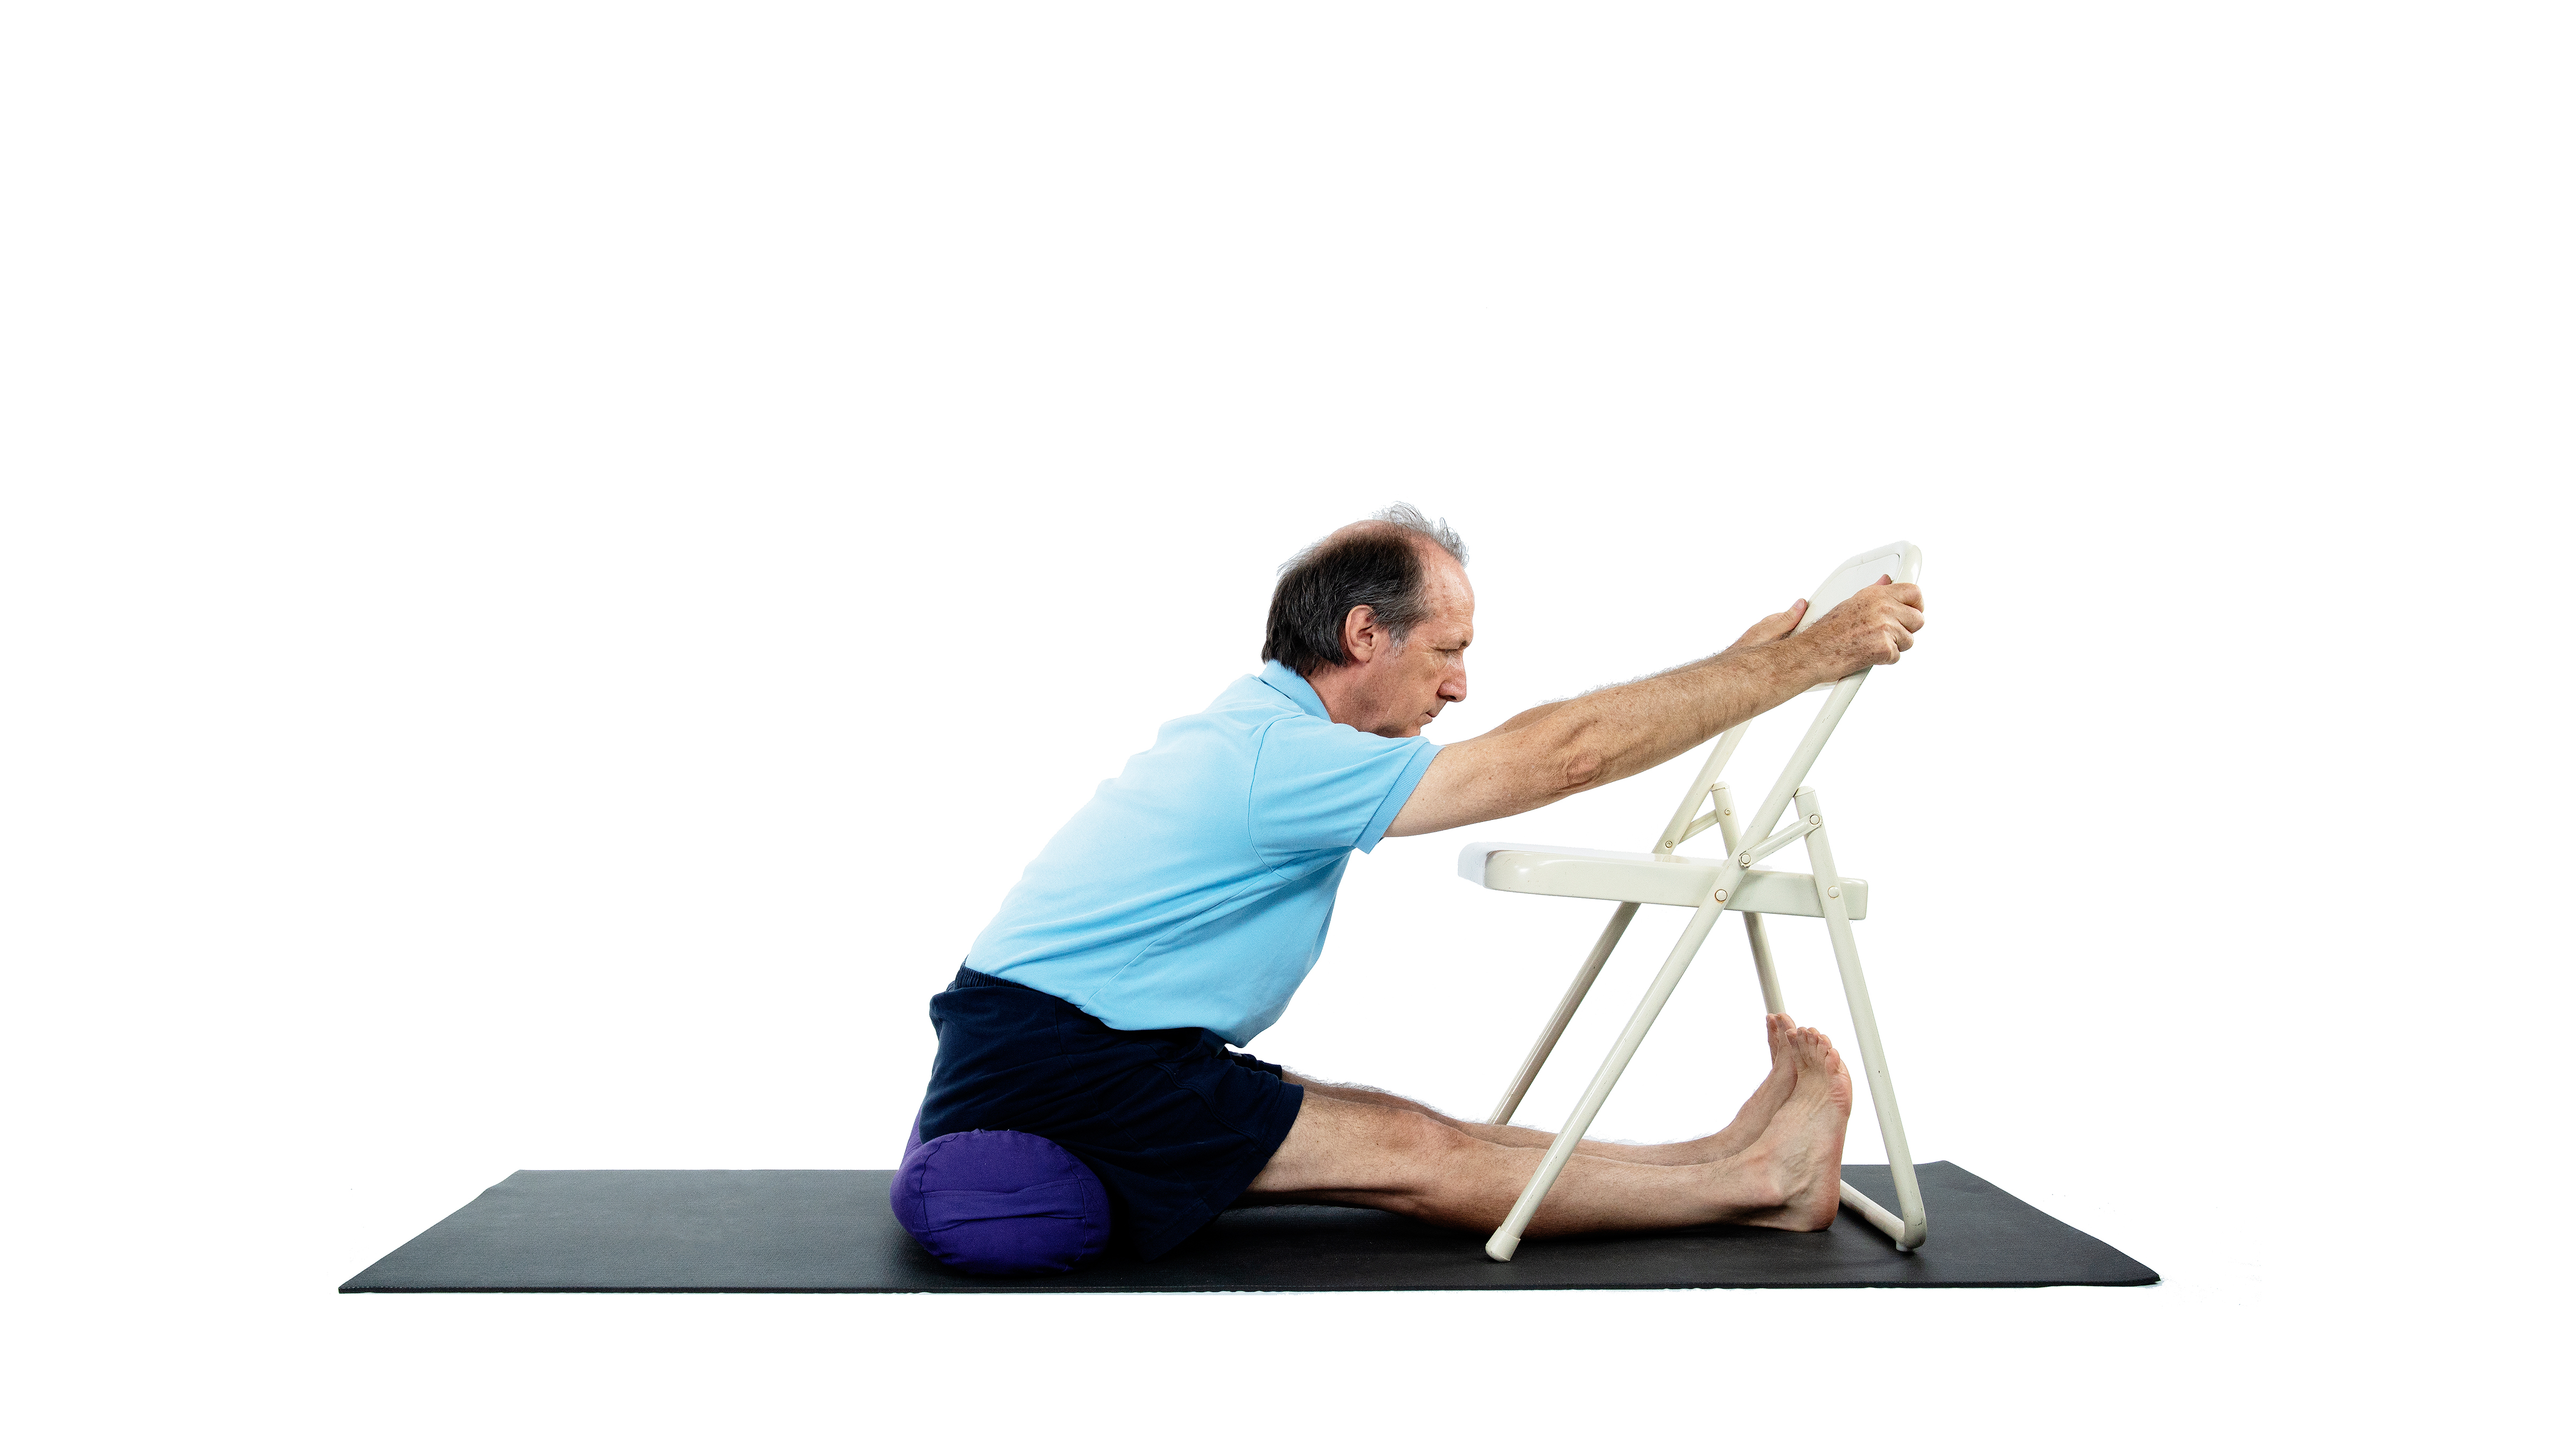 Seated Forward Fold Paschimottanasana with chair and bolster used as props for this variation